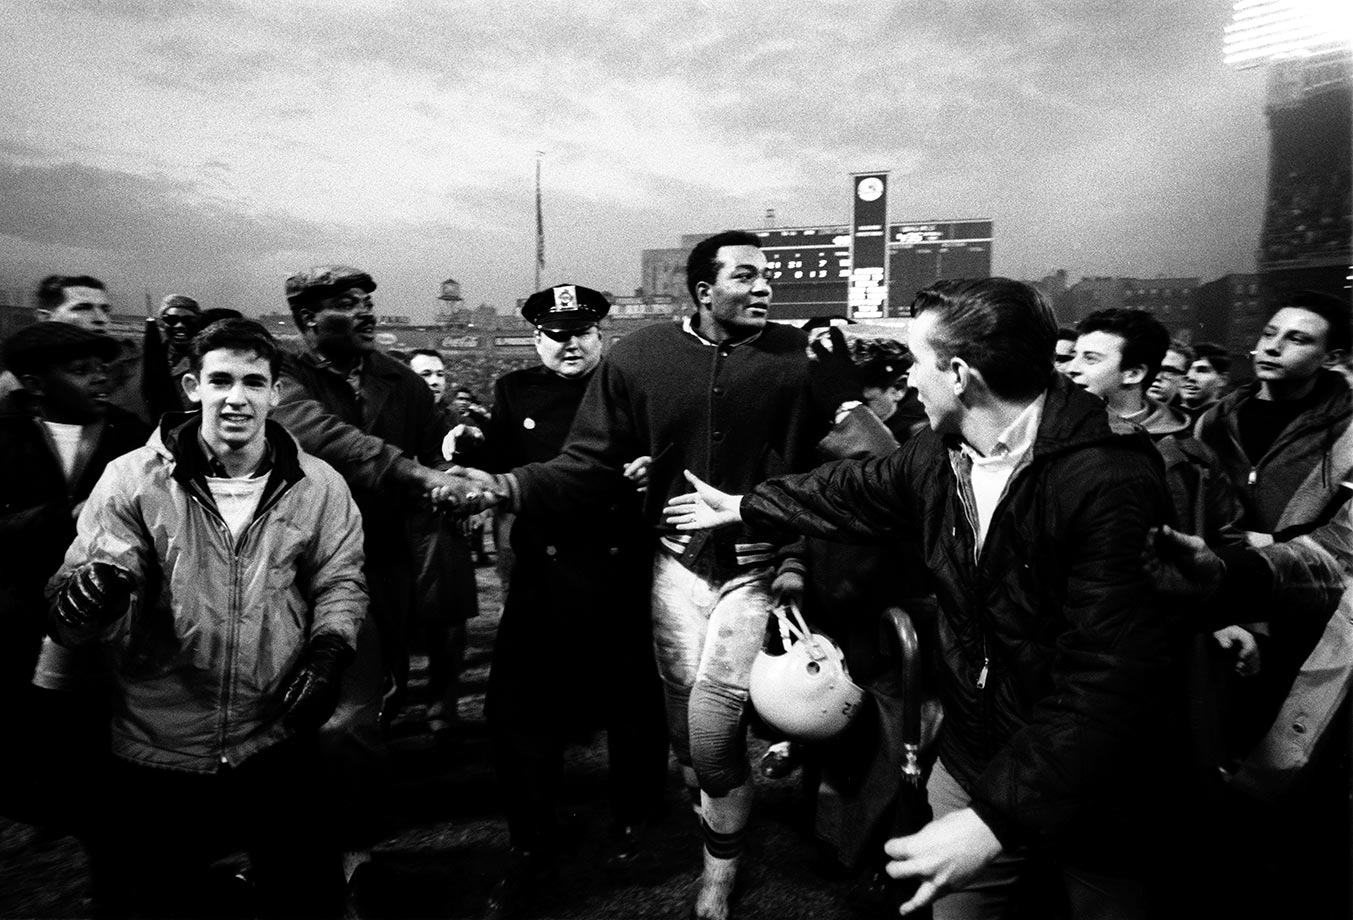 Jim Brown walks off the field after the Cleveland Browns dominated the New York Giants 52-20 in 1964. The victory capped off a 10-3-1 regular season that sent the Browns to the NFL Championship Game.